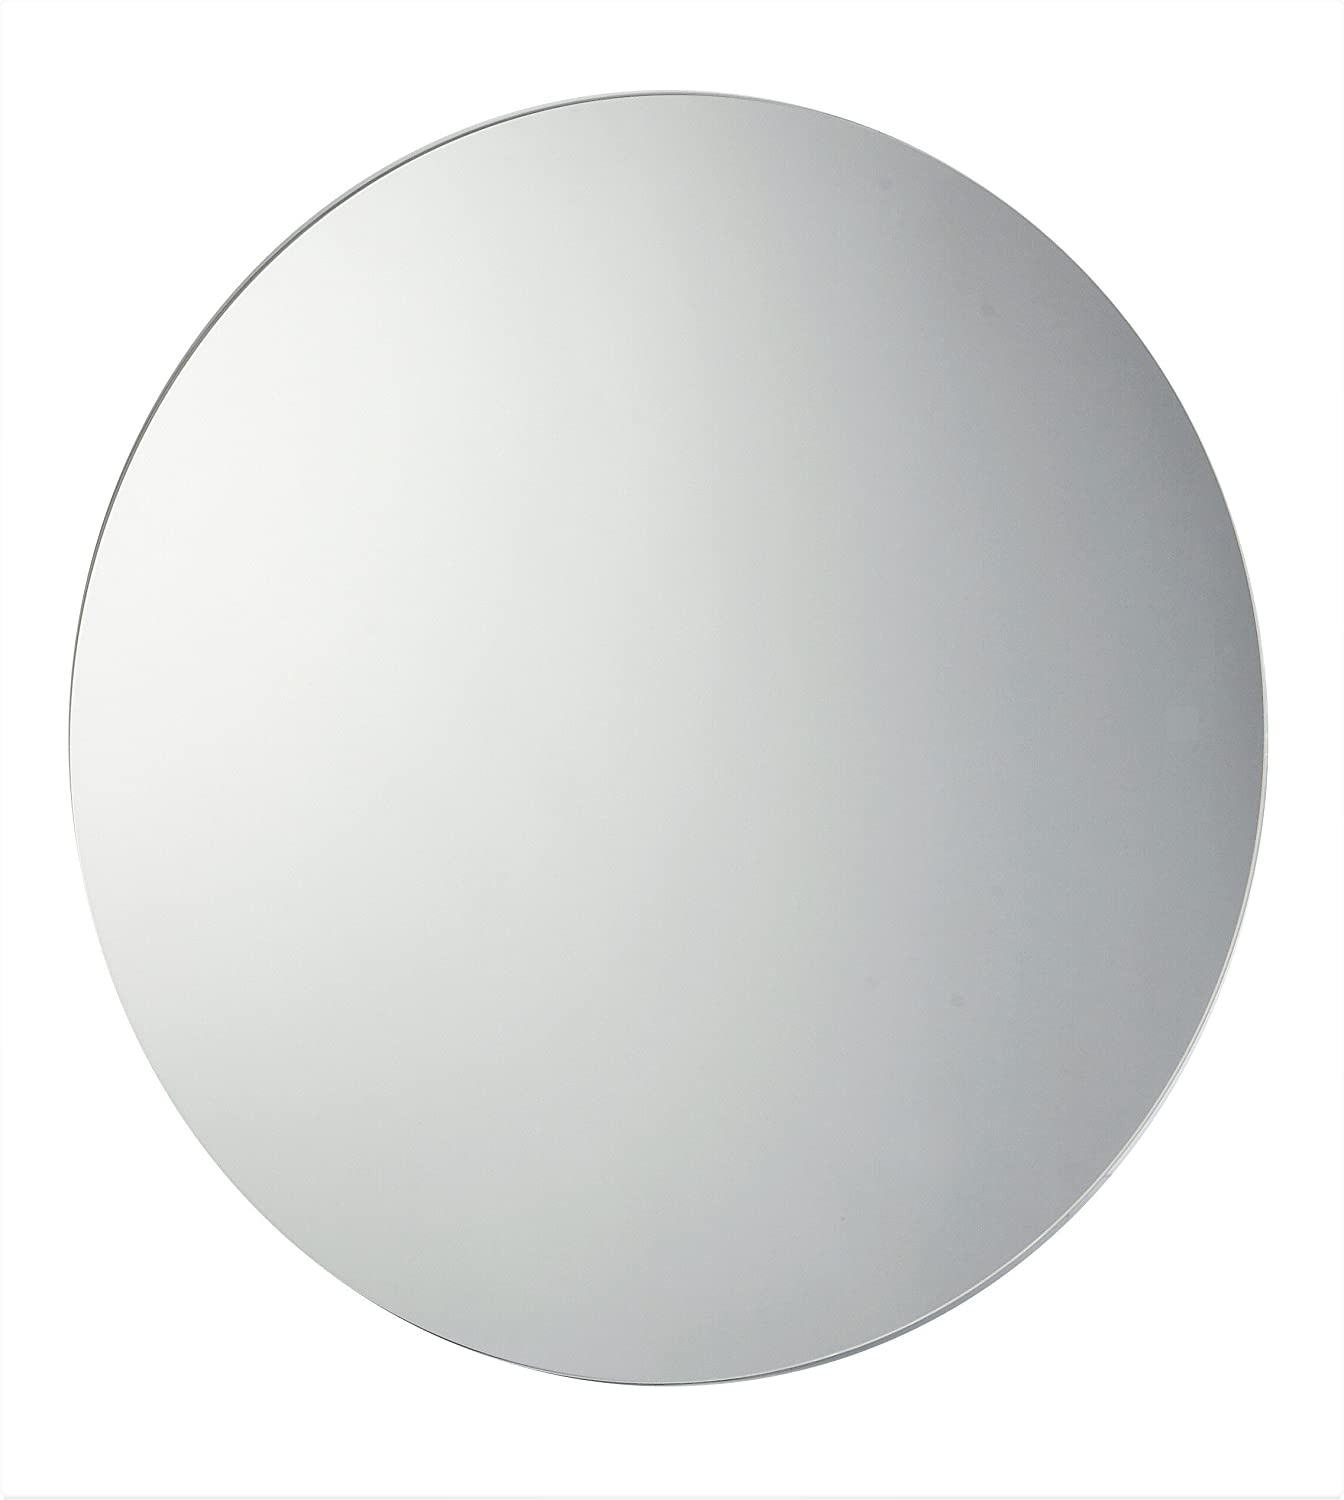 60cm Diameter Circular Round Bathroom Mirror, Unframed, Frameless Bathroom Mirror with Wall Hanging Fixing Hardware